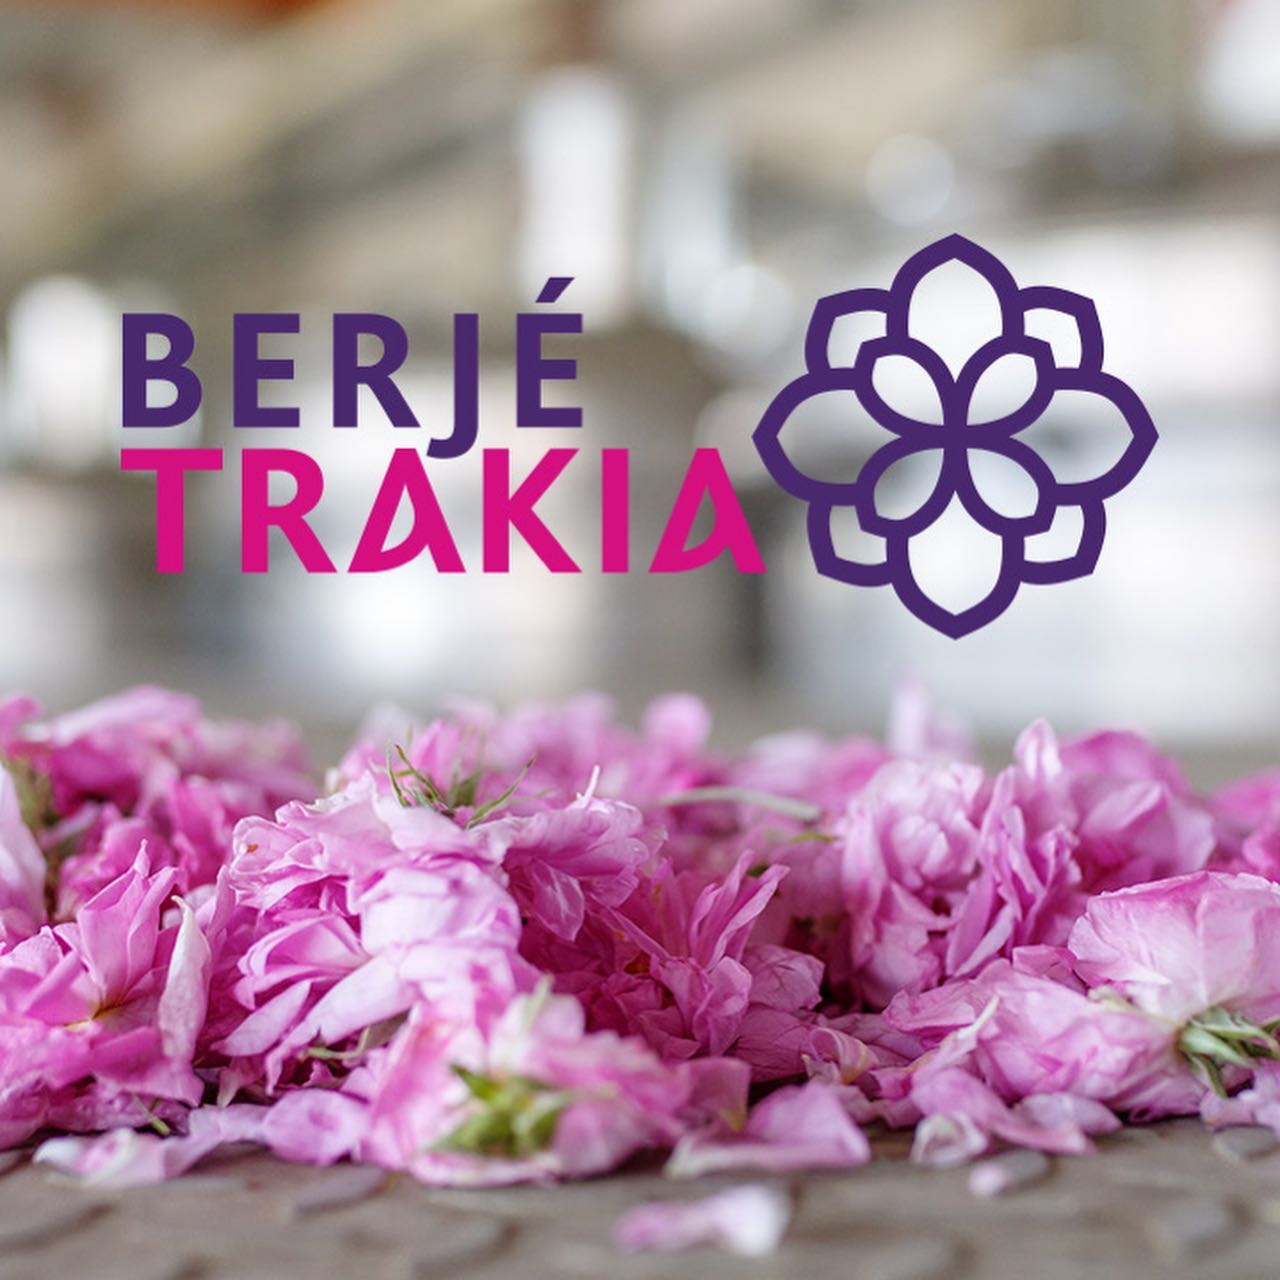 Berjé is excited to announce the opening of our new facility in Bulgaria! Berjé Trakia stands emblematic of our commitment towards local farmers, cultural growing practices, and natural-hand picked materials. Check out our website for more information on our new facility! #Berje #Berjetrakia #Lavender #Rose